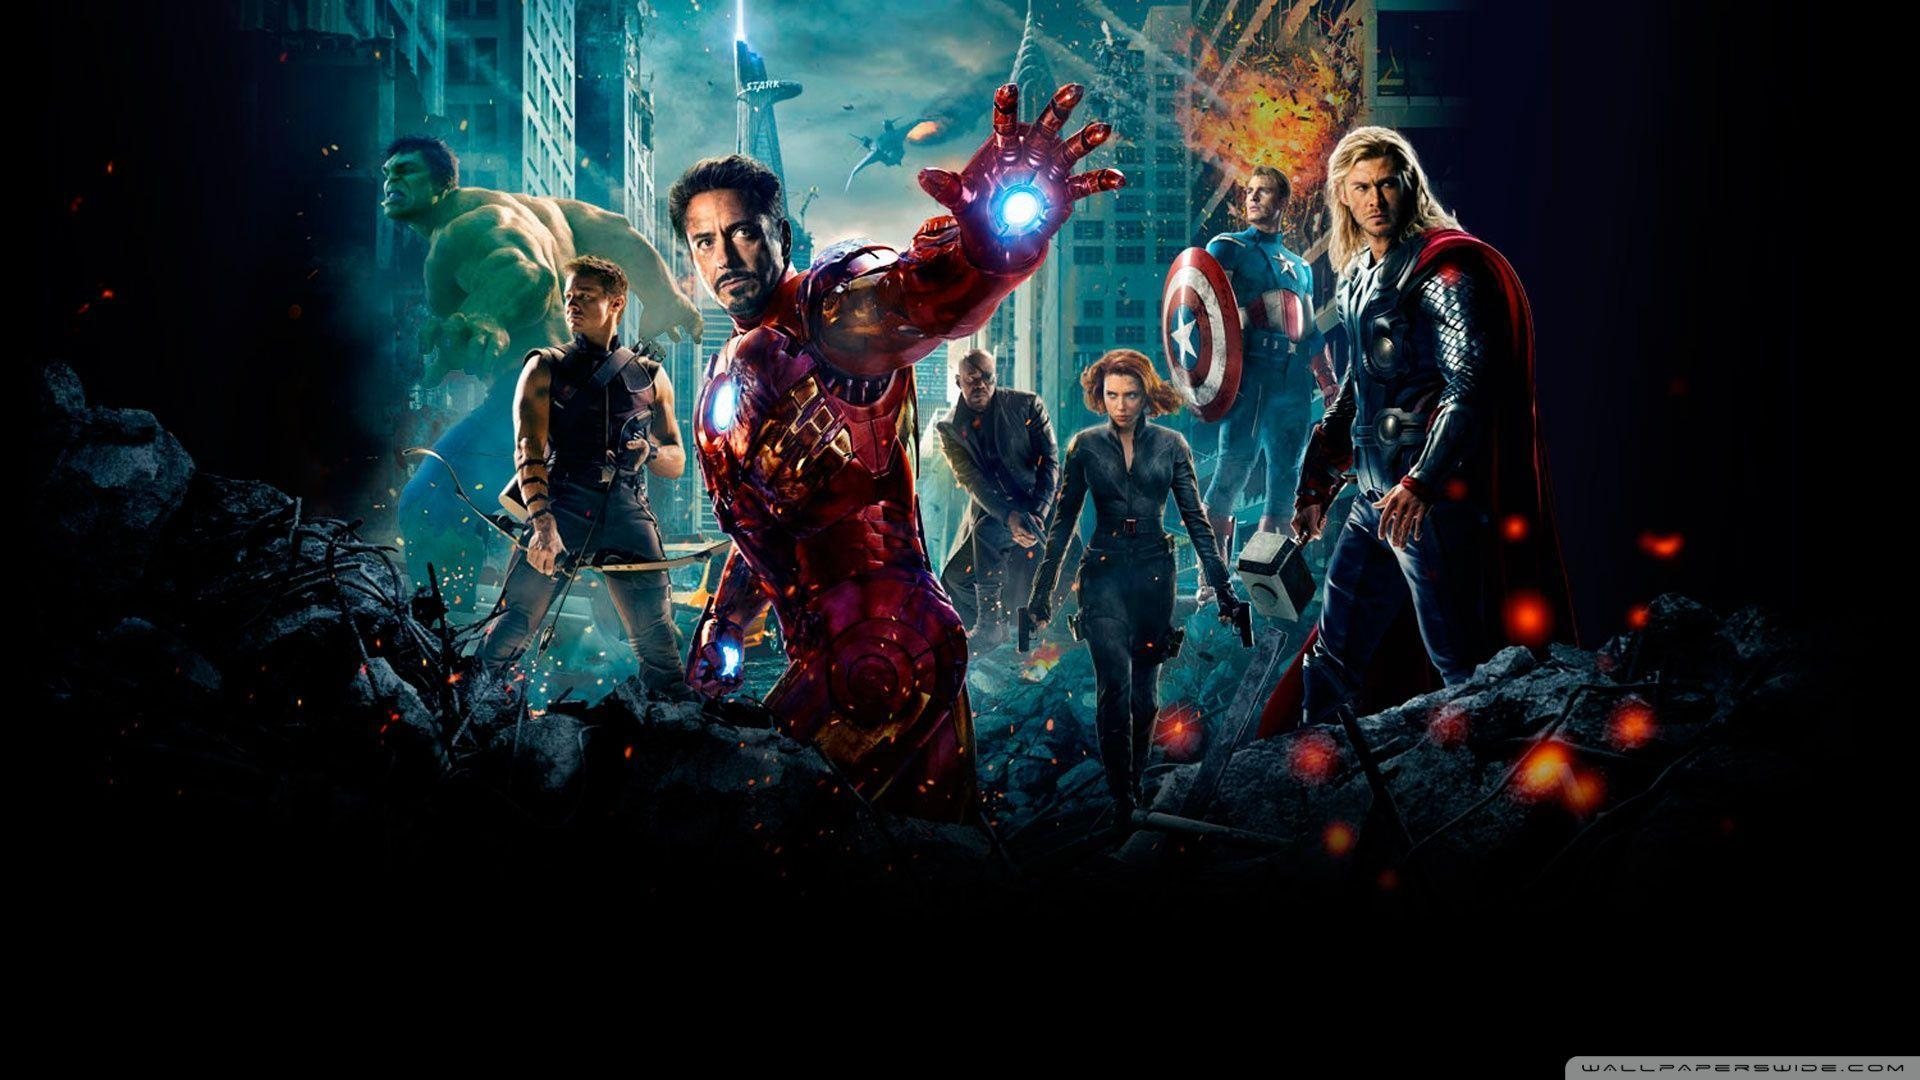 The Avengers HD Wallpapers Free Download